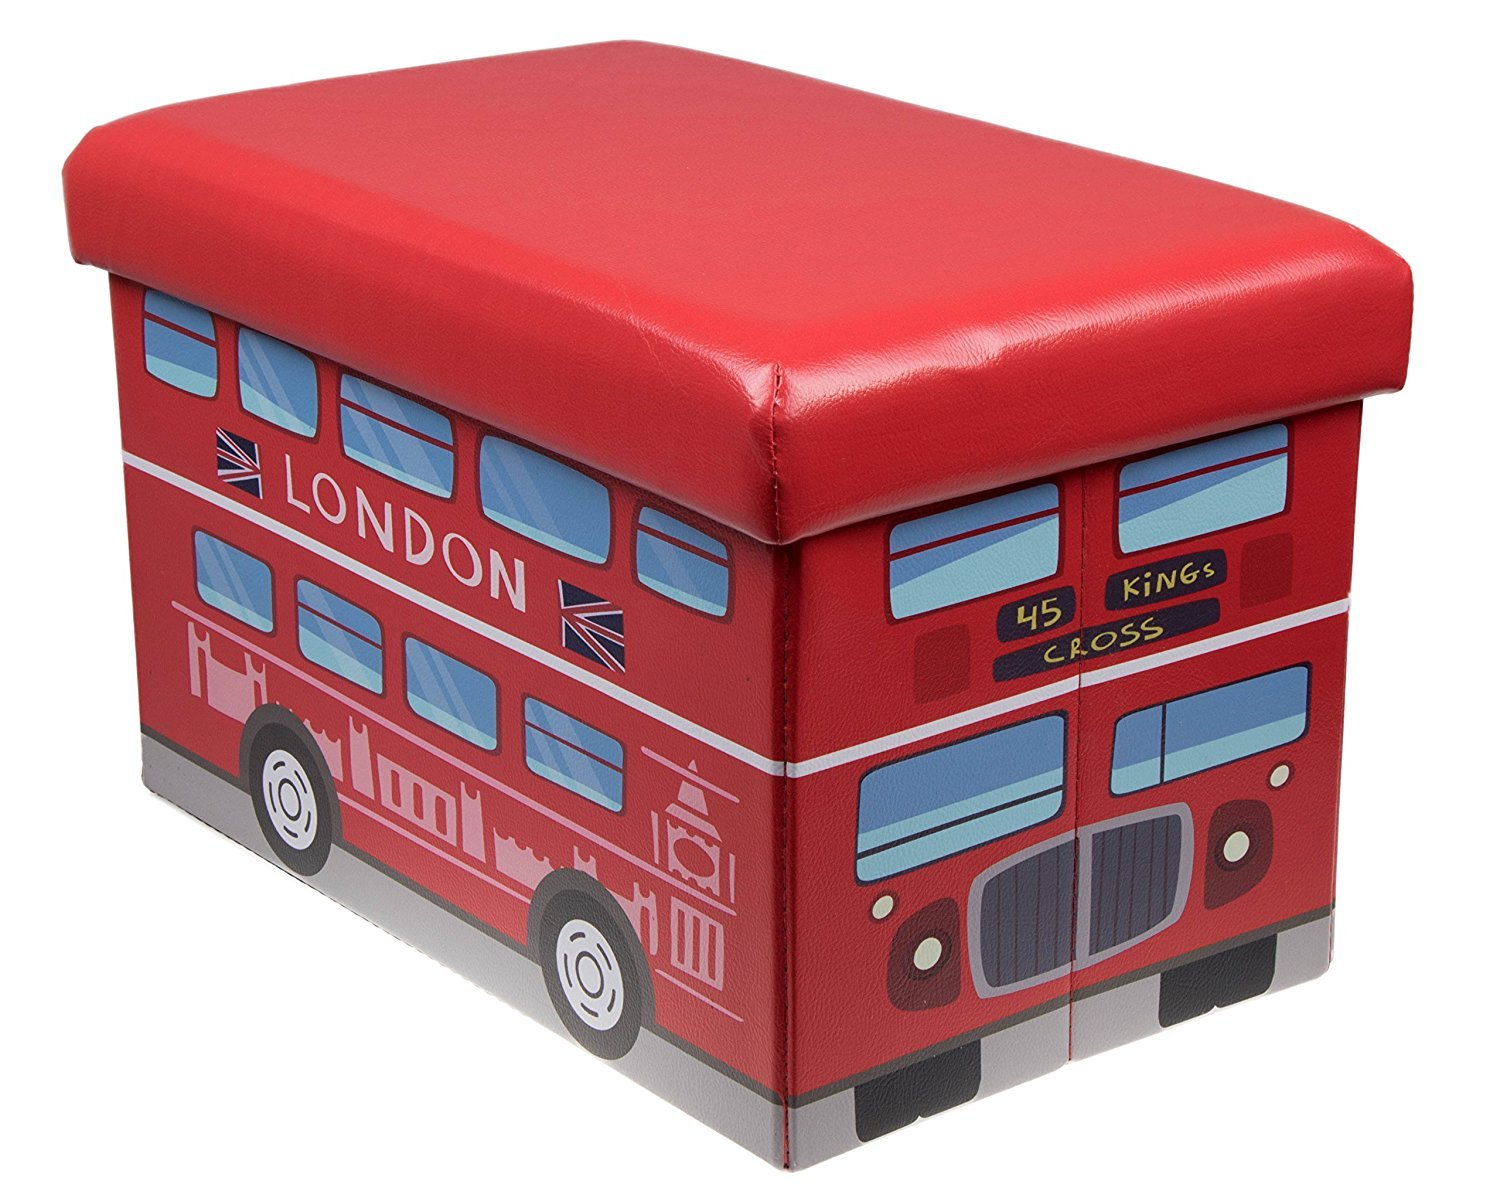 Double Decker Bus Collapsible Storage Organizer by Clever Creations | Storage Box Folding Storage Ottoman for Your Bedroom | Perfect Size Storage Chest for Books, Shoes & Games